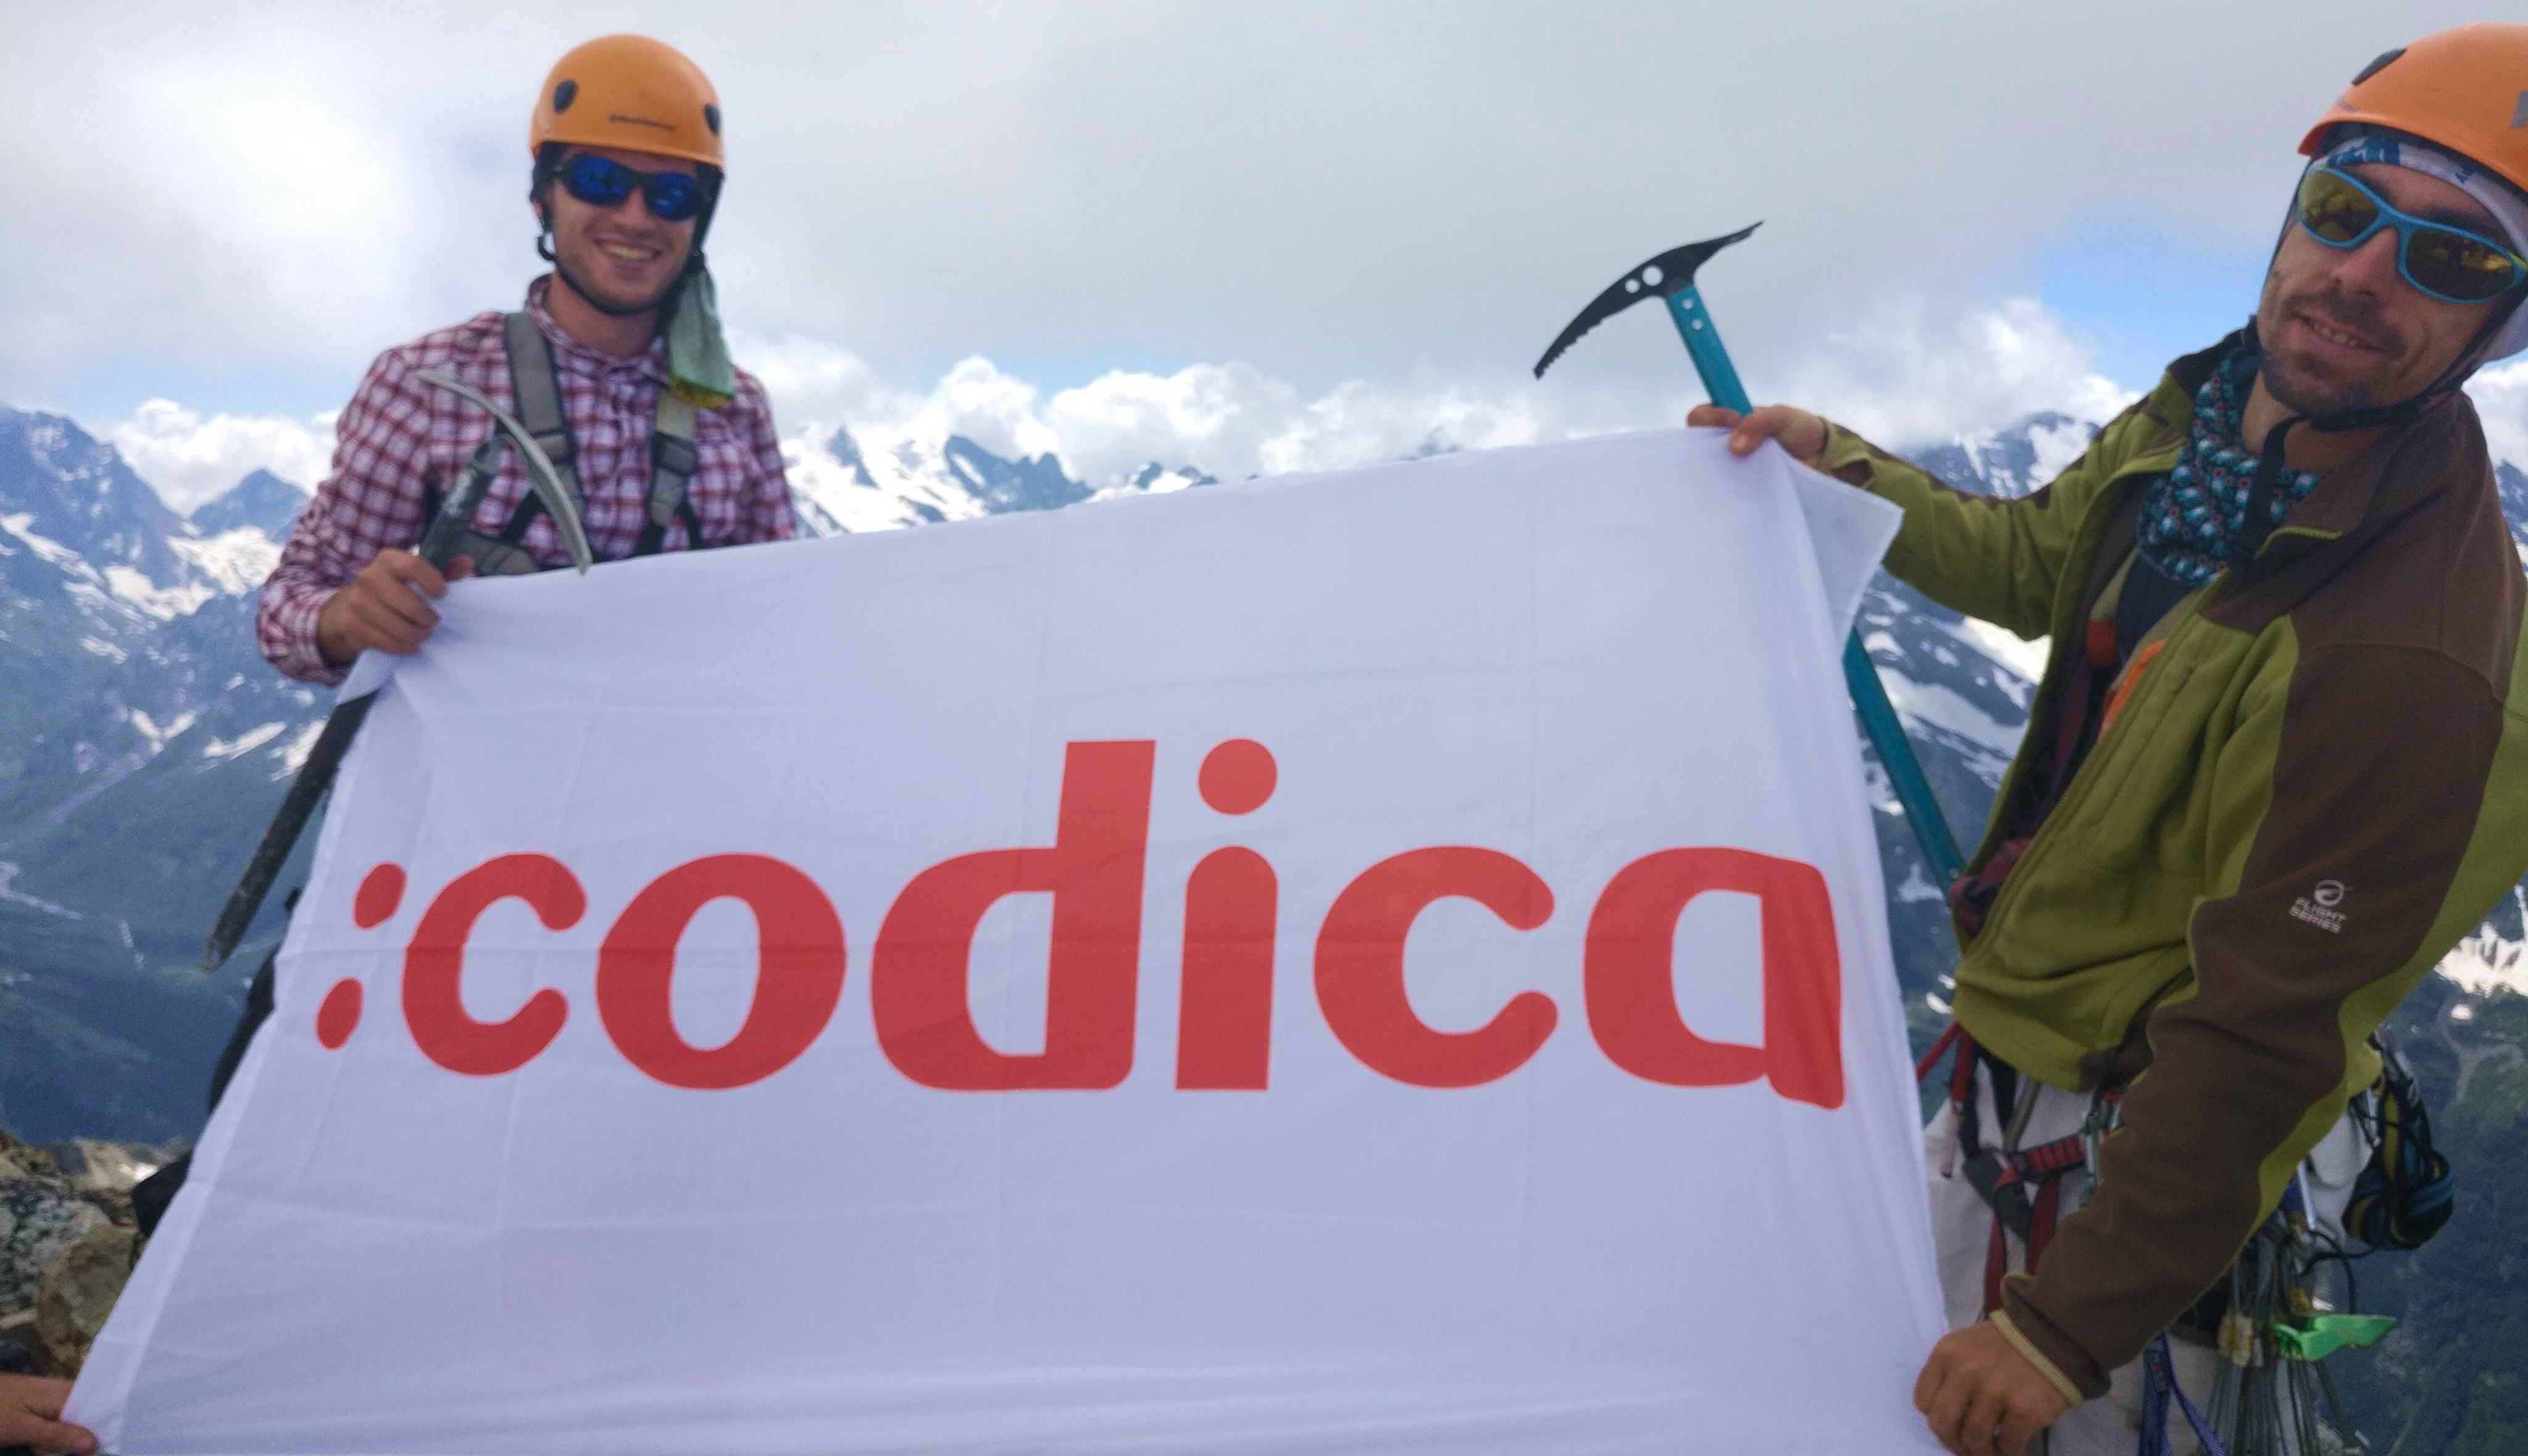 Mountain climbing as one of the hobbies of our teammates | Codica